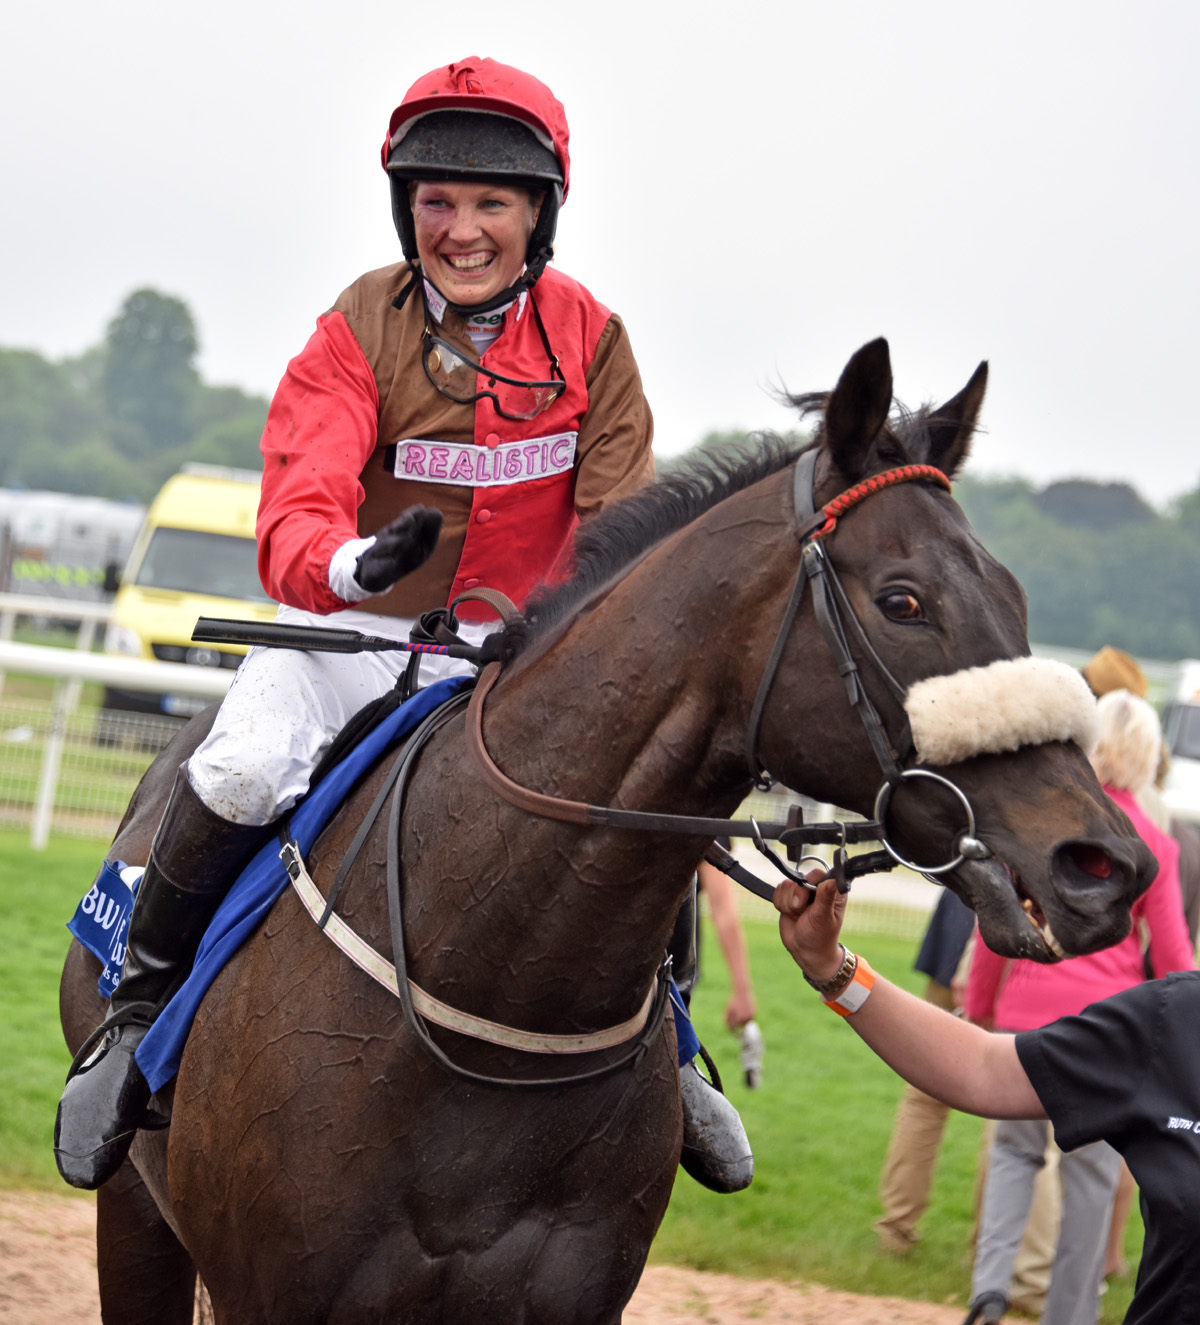 After winning the York Charity race